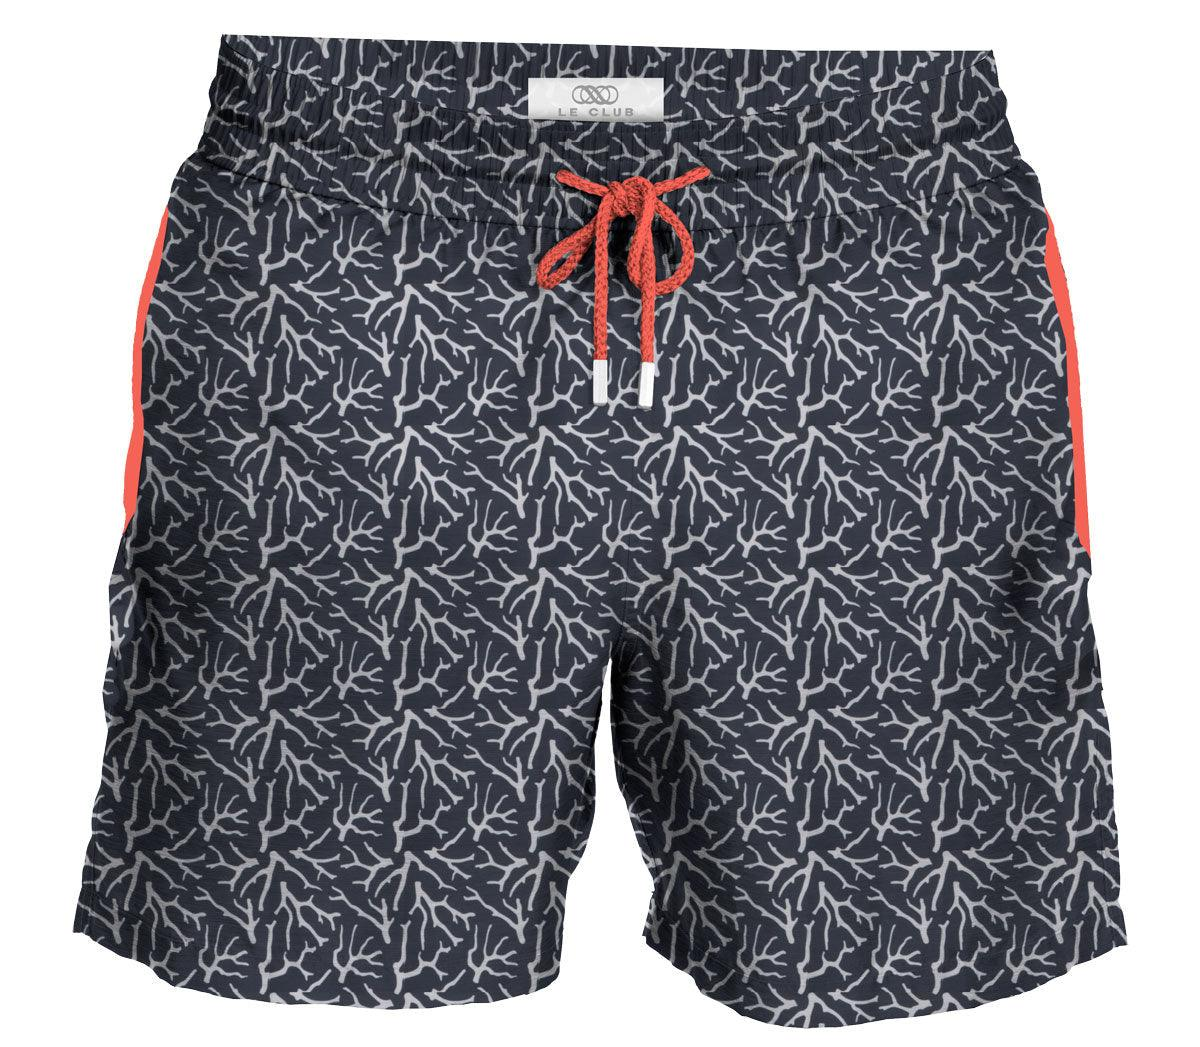 Men's Swim Trunks Coral